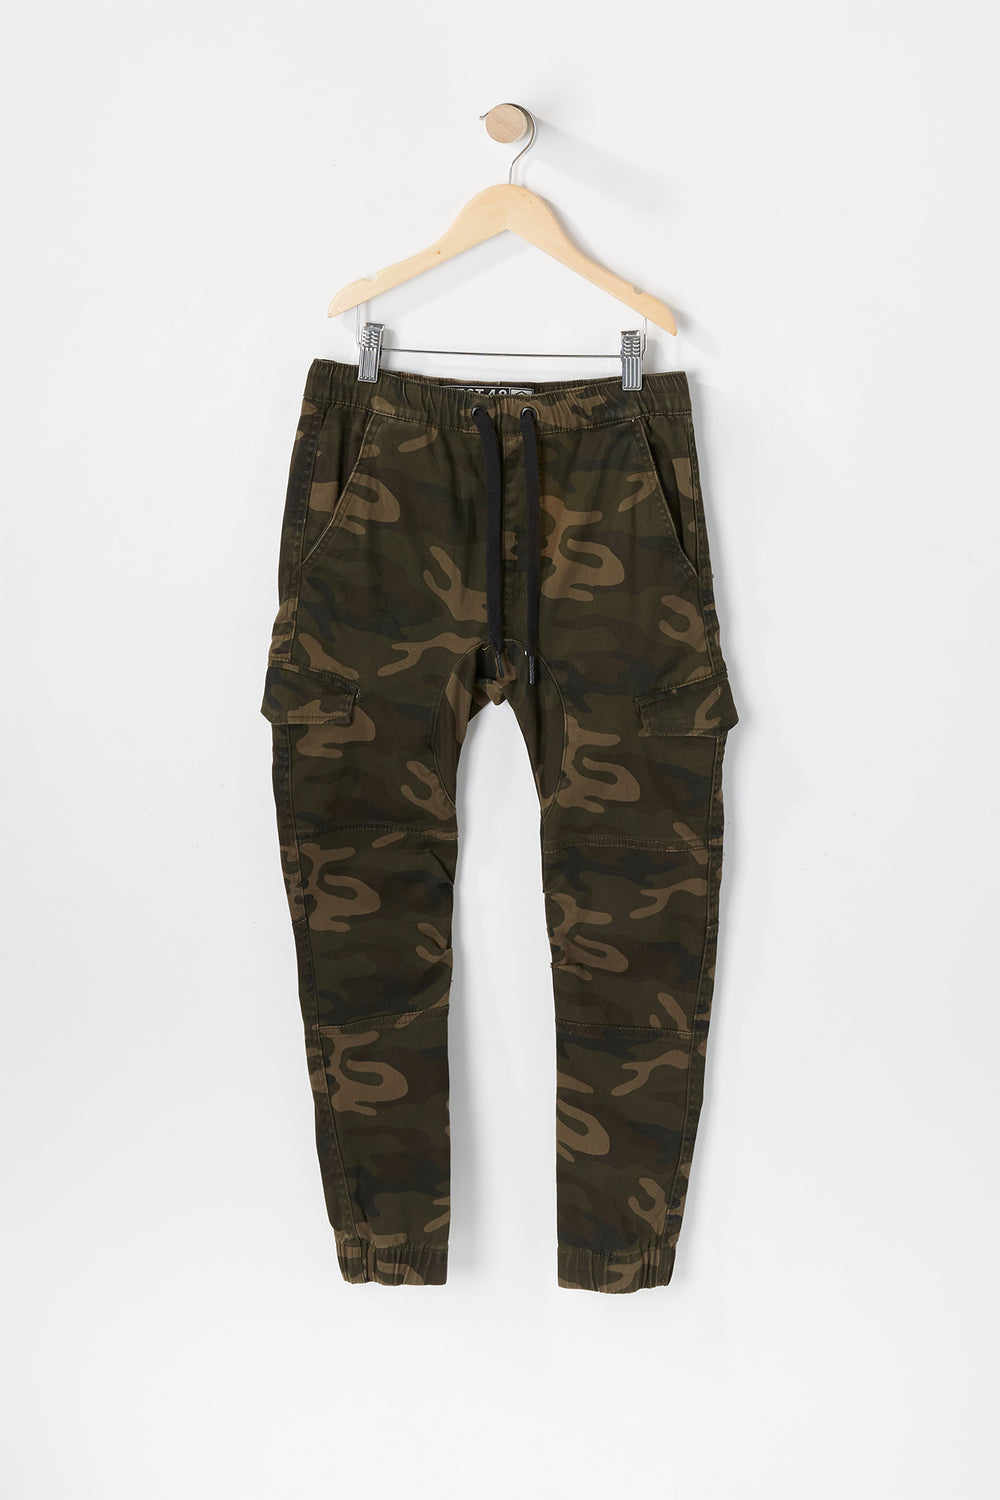 Jogger Camouflage Style Cargo West49 Junior Camoufle